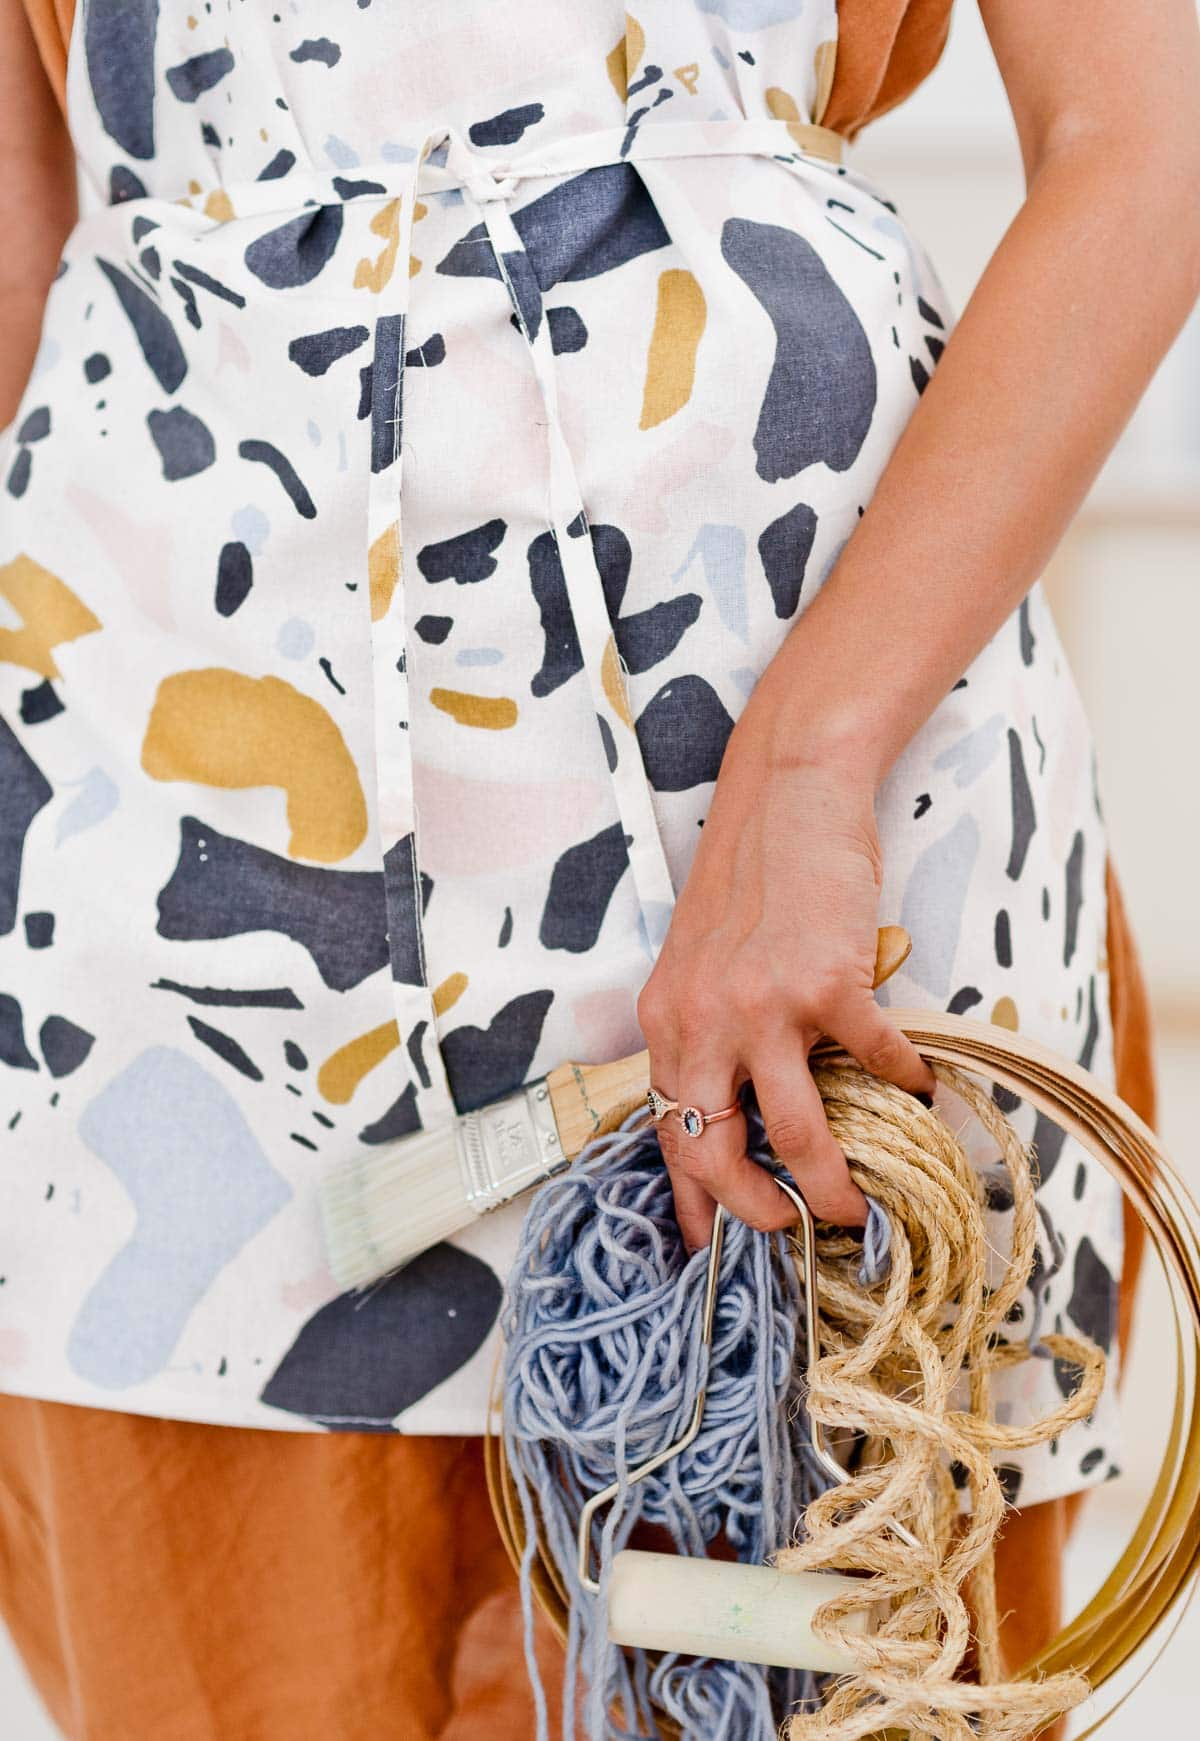 Detail photo of terrazzo print apron, made by hand.